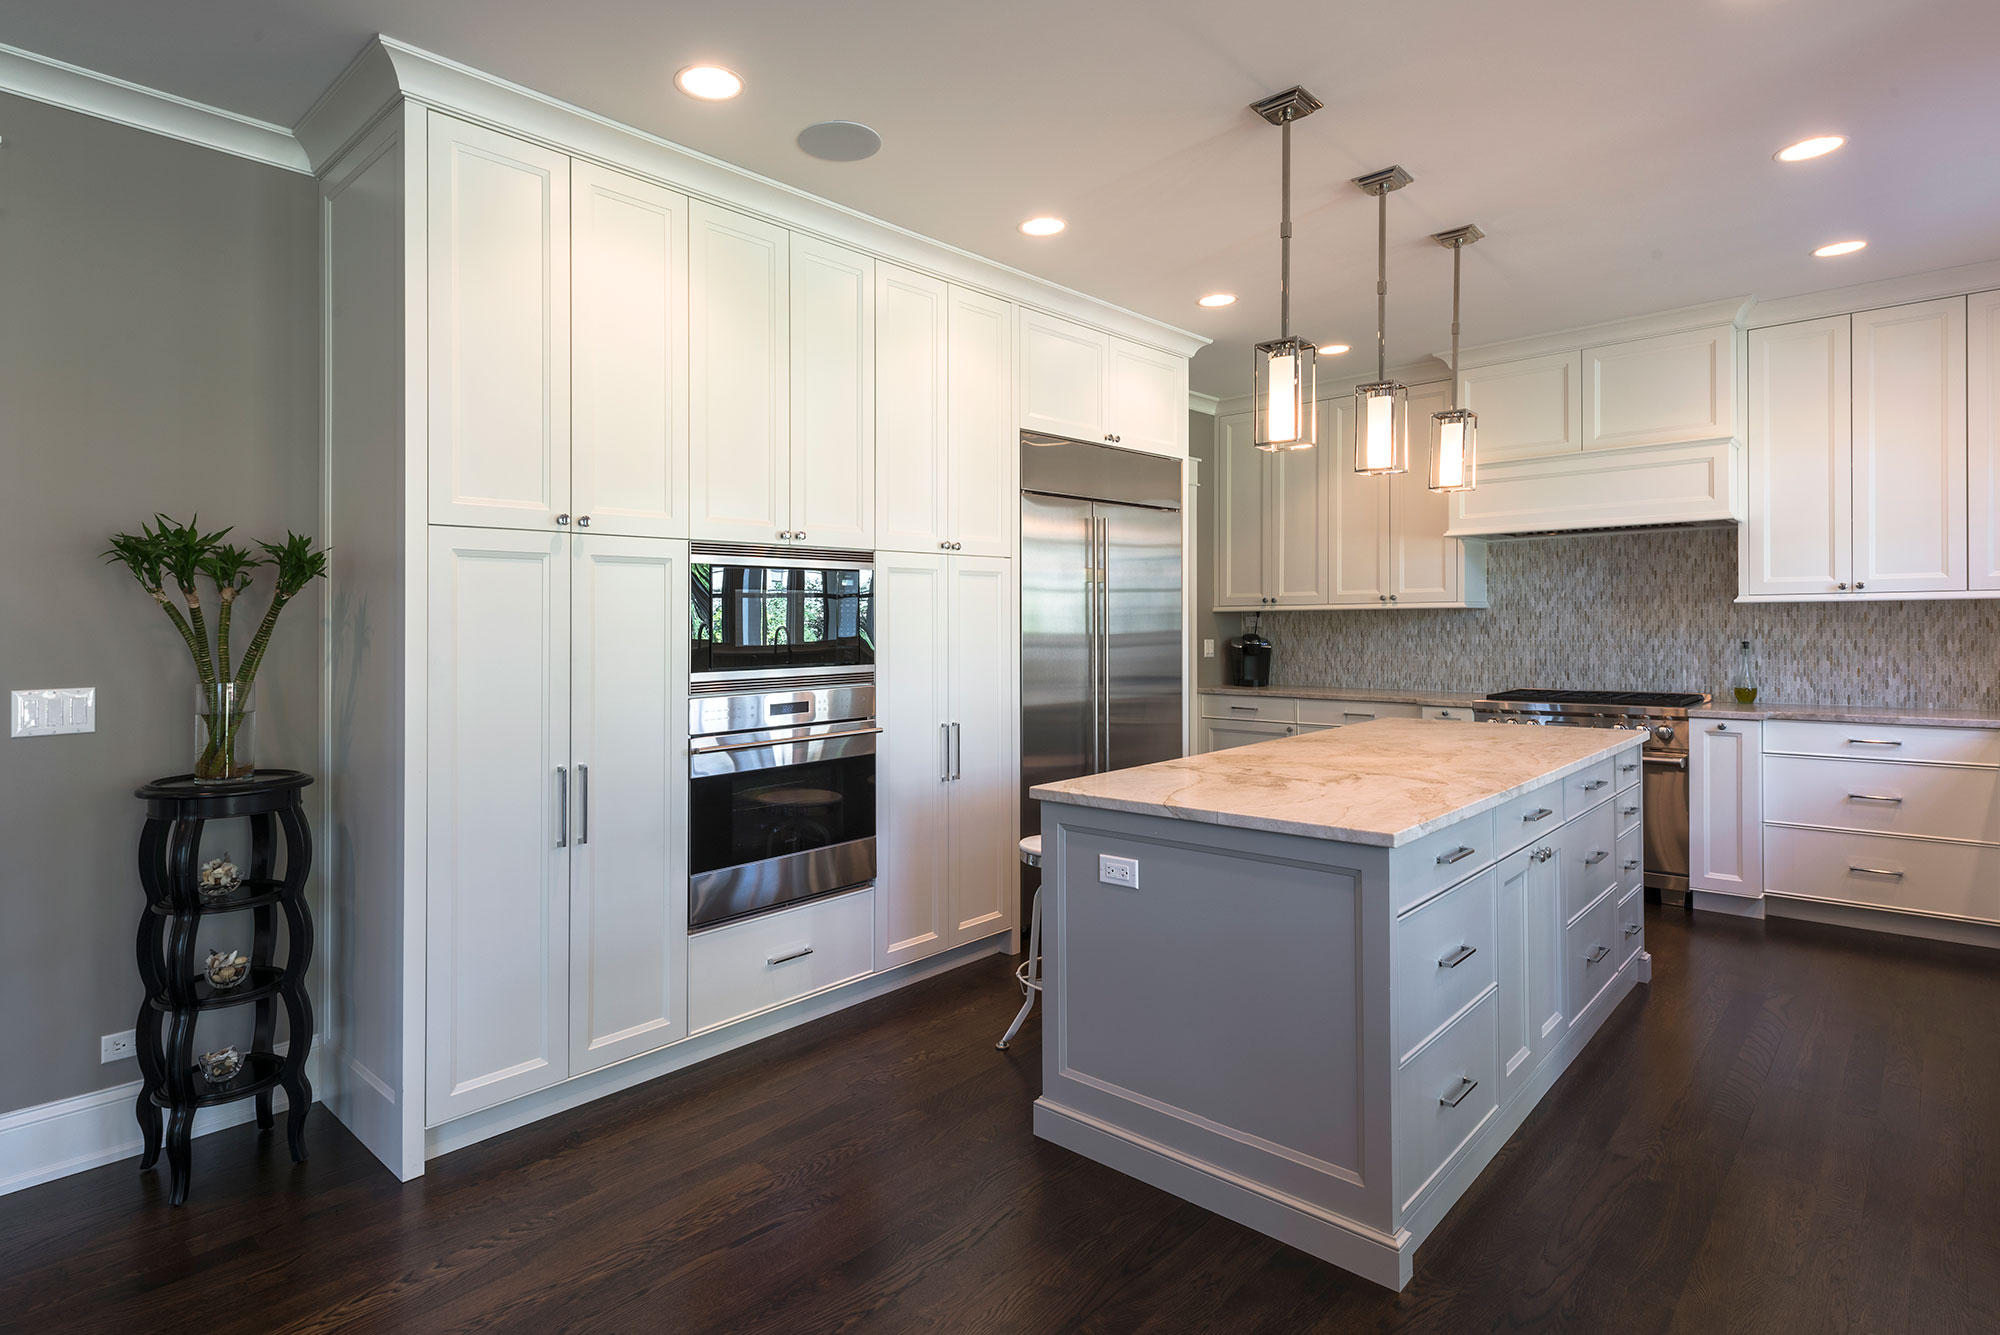 Kitchen With Wooden Cabinetry, Granite Countertops, And Stainless Steel  Appliances